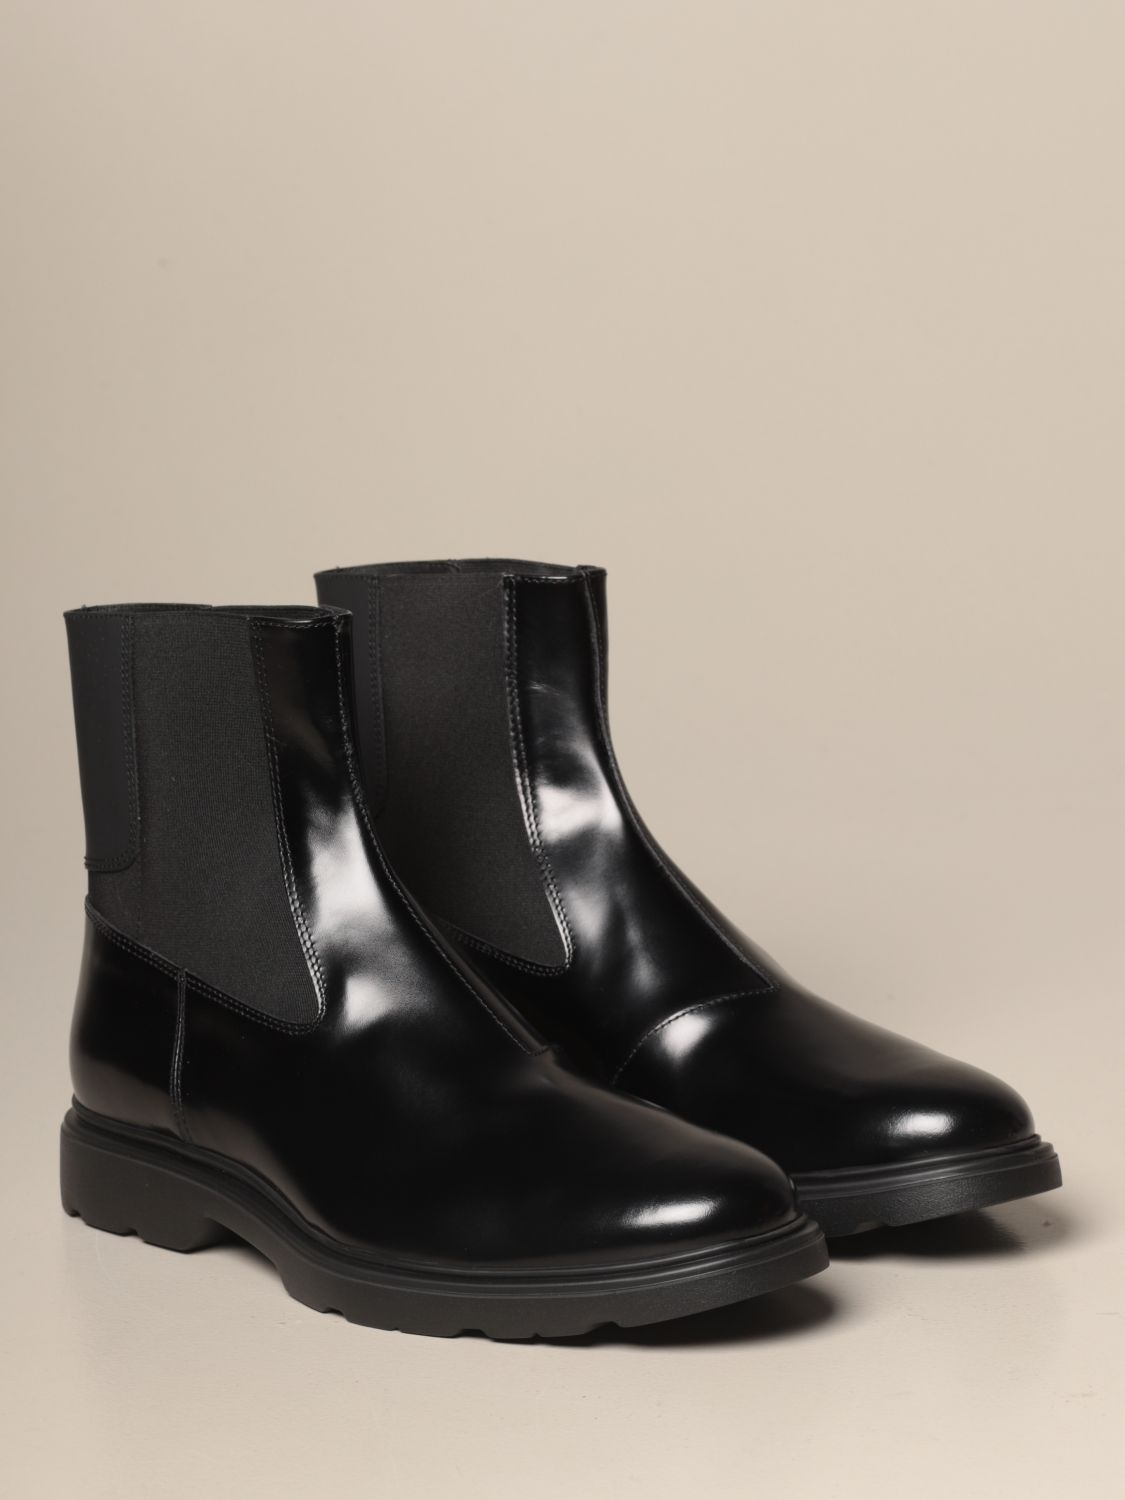 H393 Hogan Chelsea boot in brushed leather